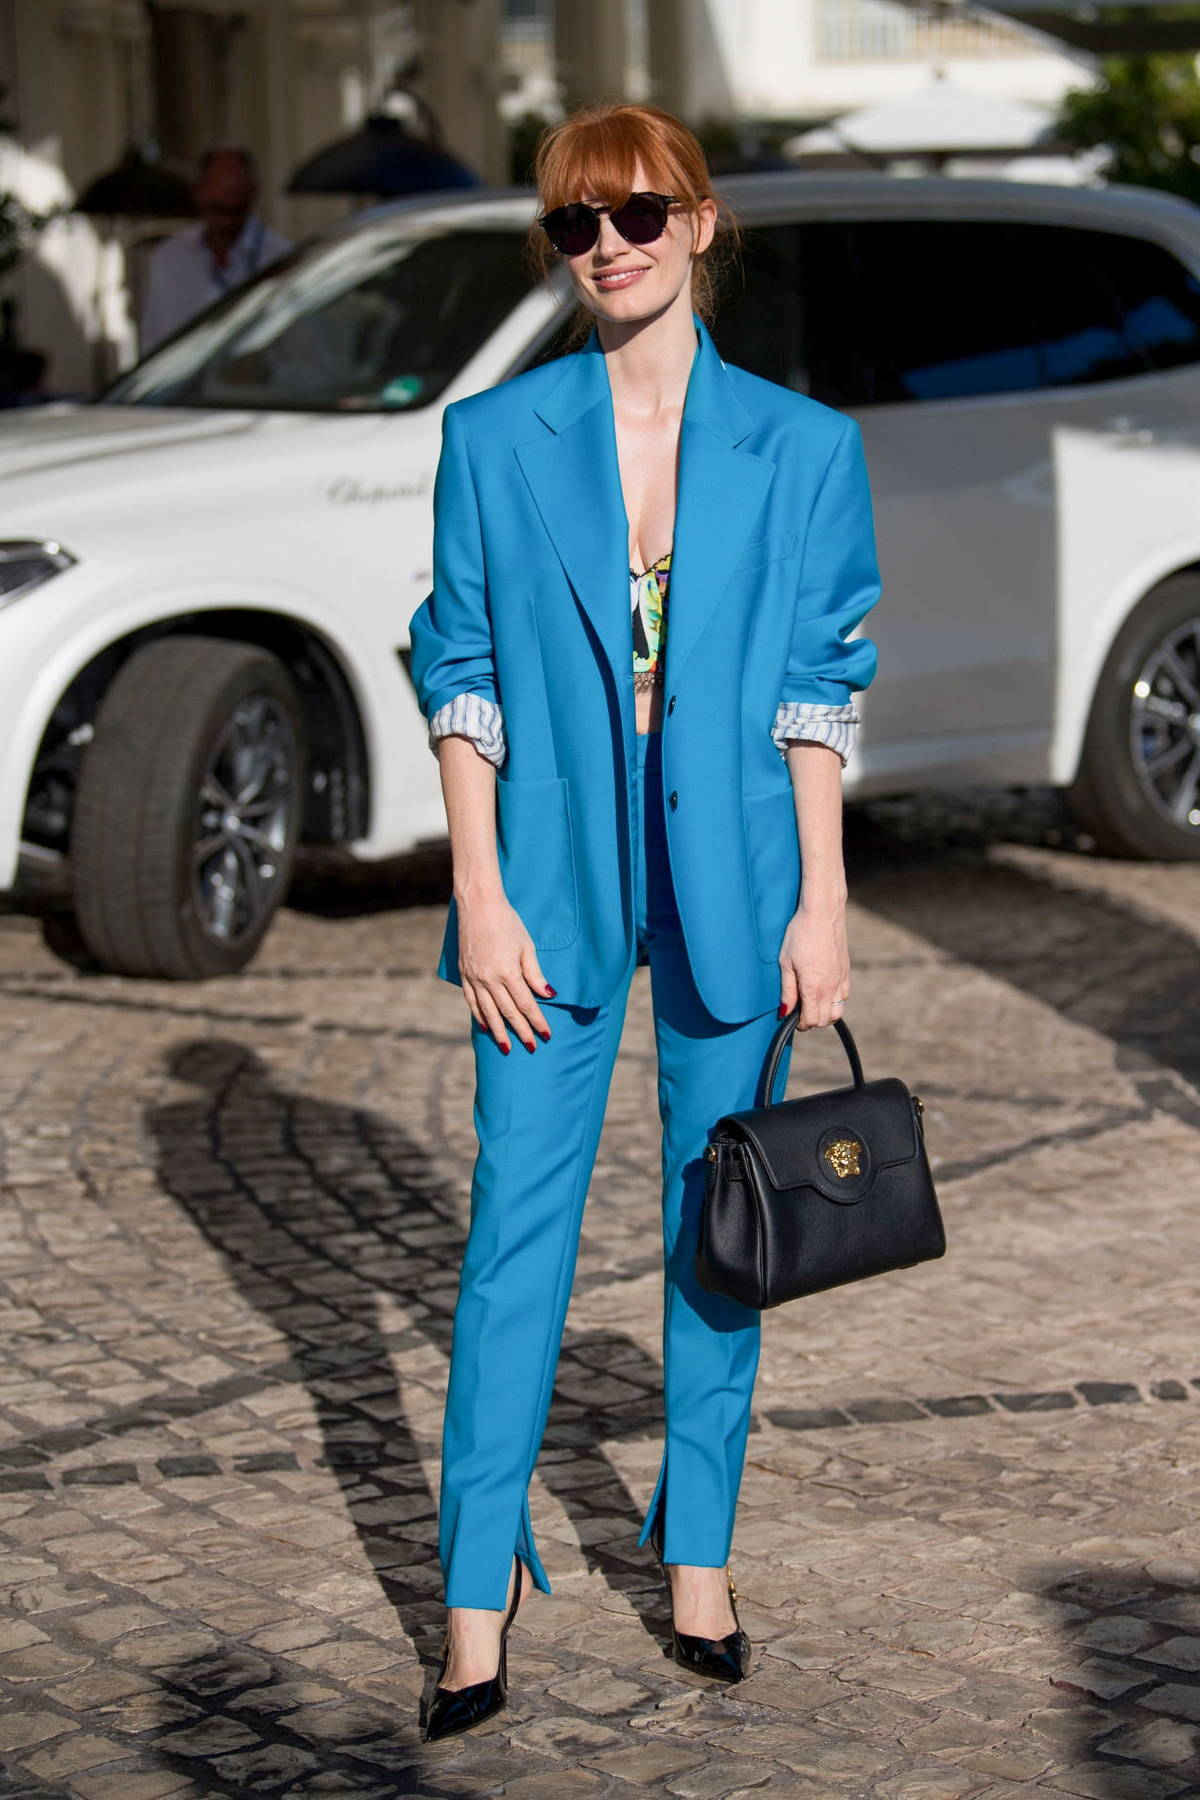 Jessica Chastain steps out looking chic in blue pantsuit during the 74th Cannes Film Festival in Cannes, France